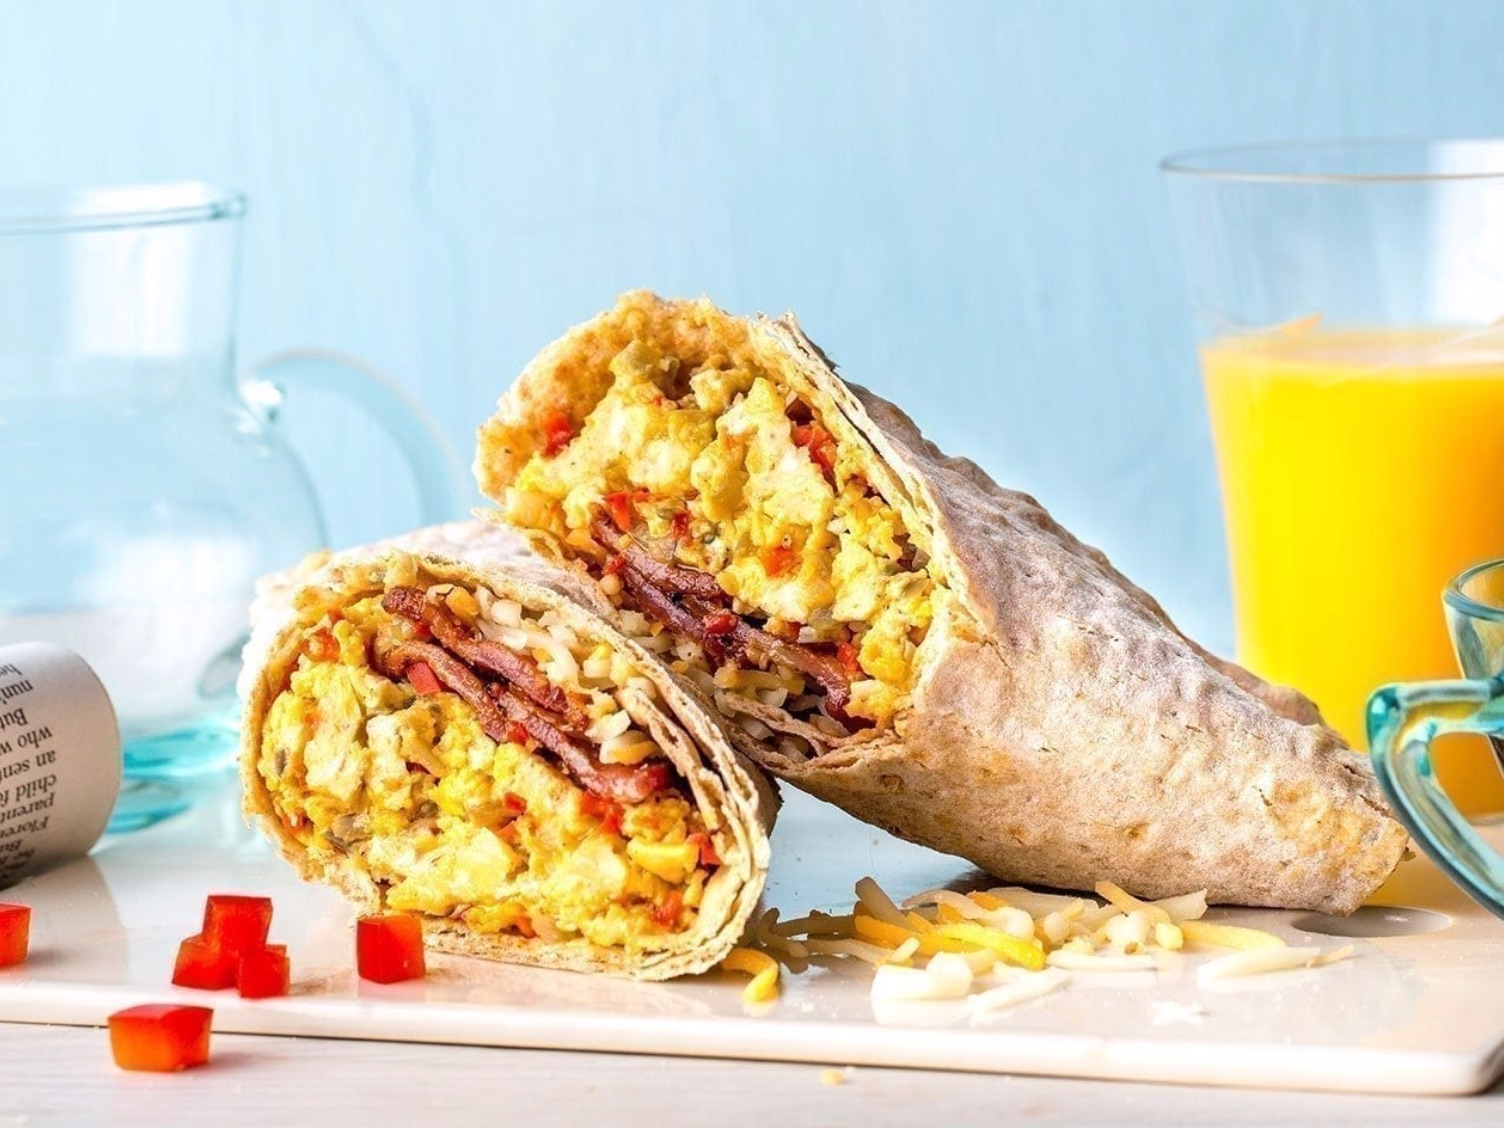 Protein-Packed Breakfast Burritos   Ingredients  8 large eggs  2 tablespoons (30 ml) 2% milk  1 tablespoon (15 ml) olive oil  1 tablespoon (15 ml) minced garlic  1 red bell pepper, minced  1/2 red onion, minced  4 slices thick-cut bacon, cooked until crispy  Salt and pepper  4 multigrain flatbreads  1/2 cup (60 grams) shredded Mexican blend cheese  Calories: 371 Fat: 22g Carbohydrate: 21g Protein: 27g